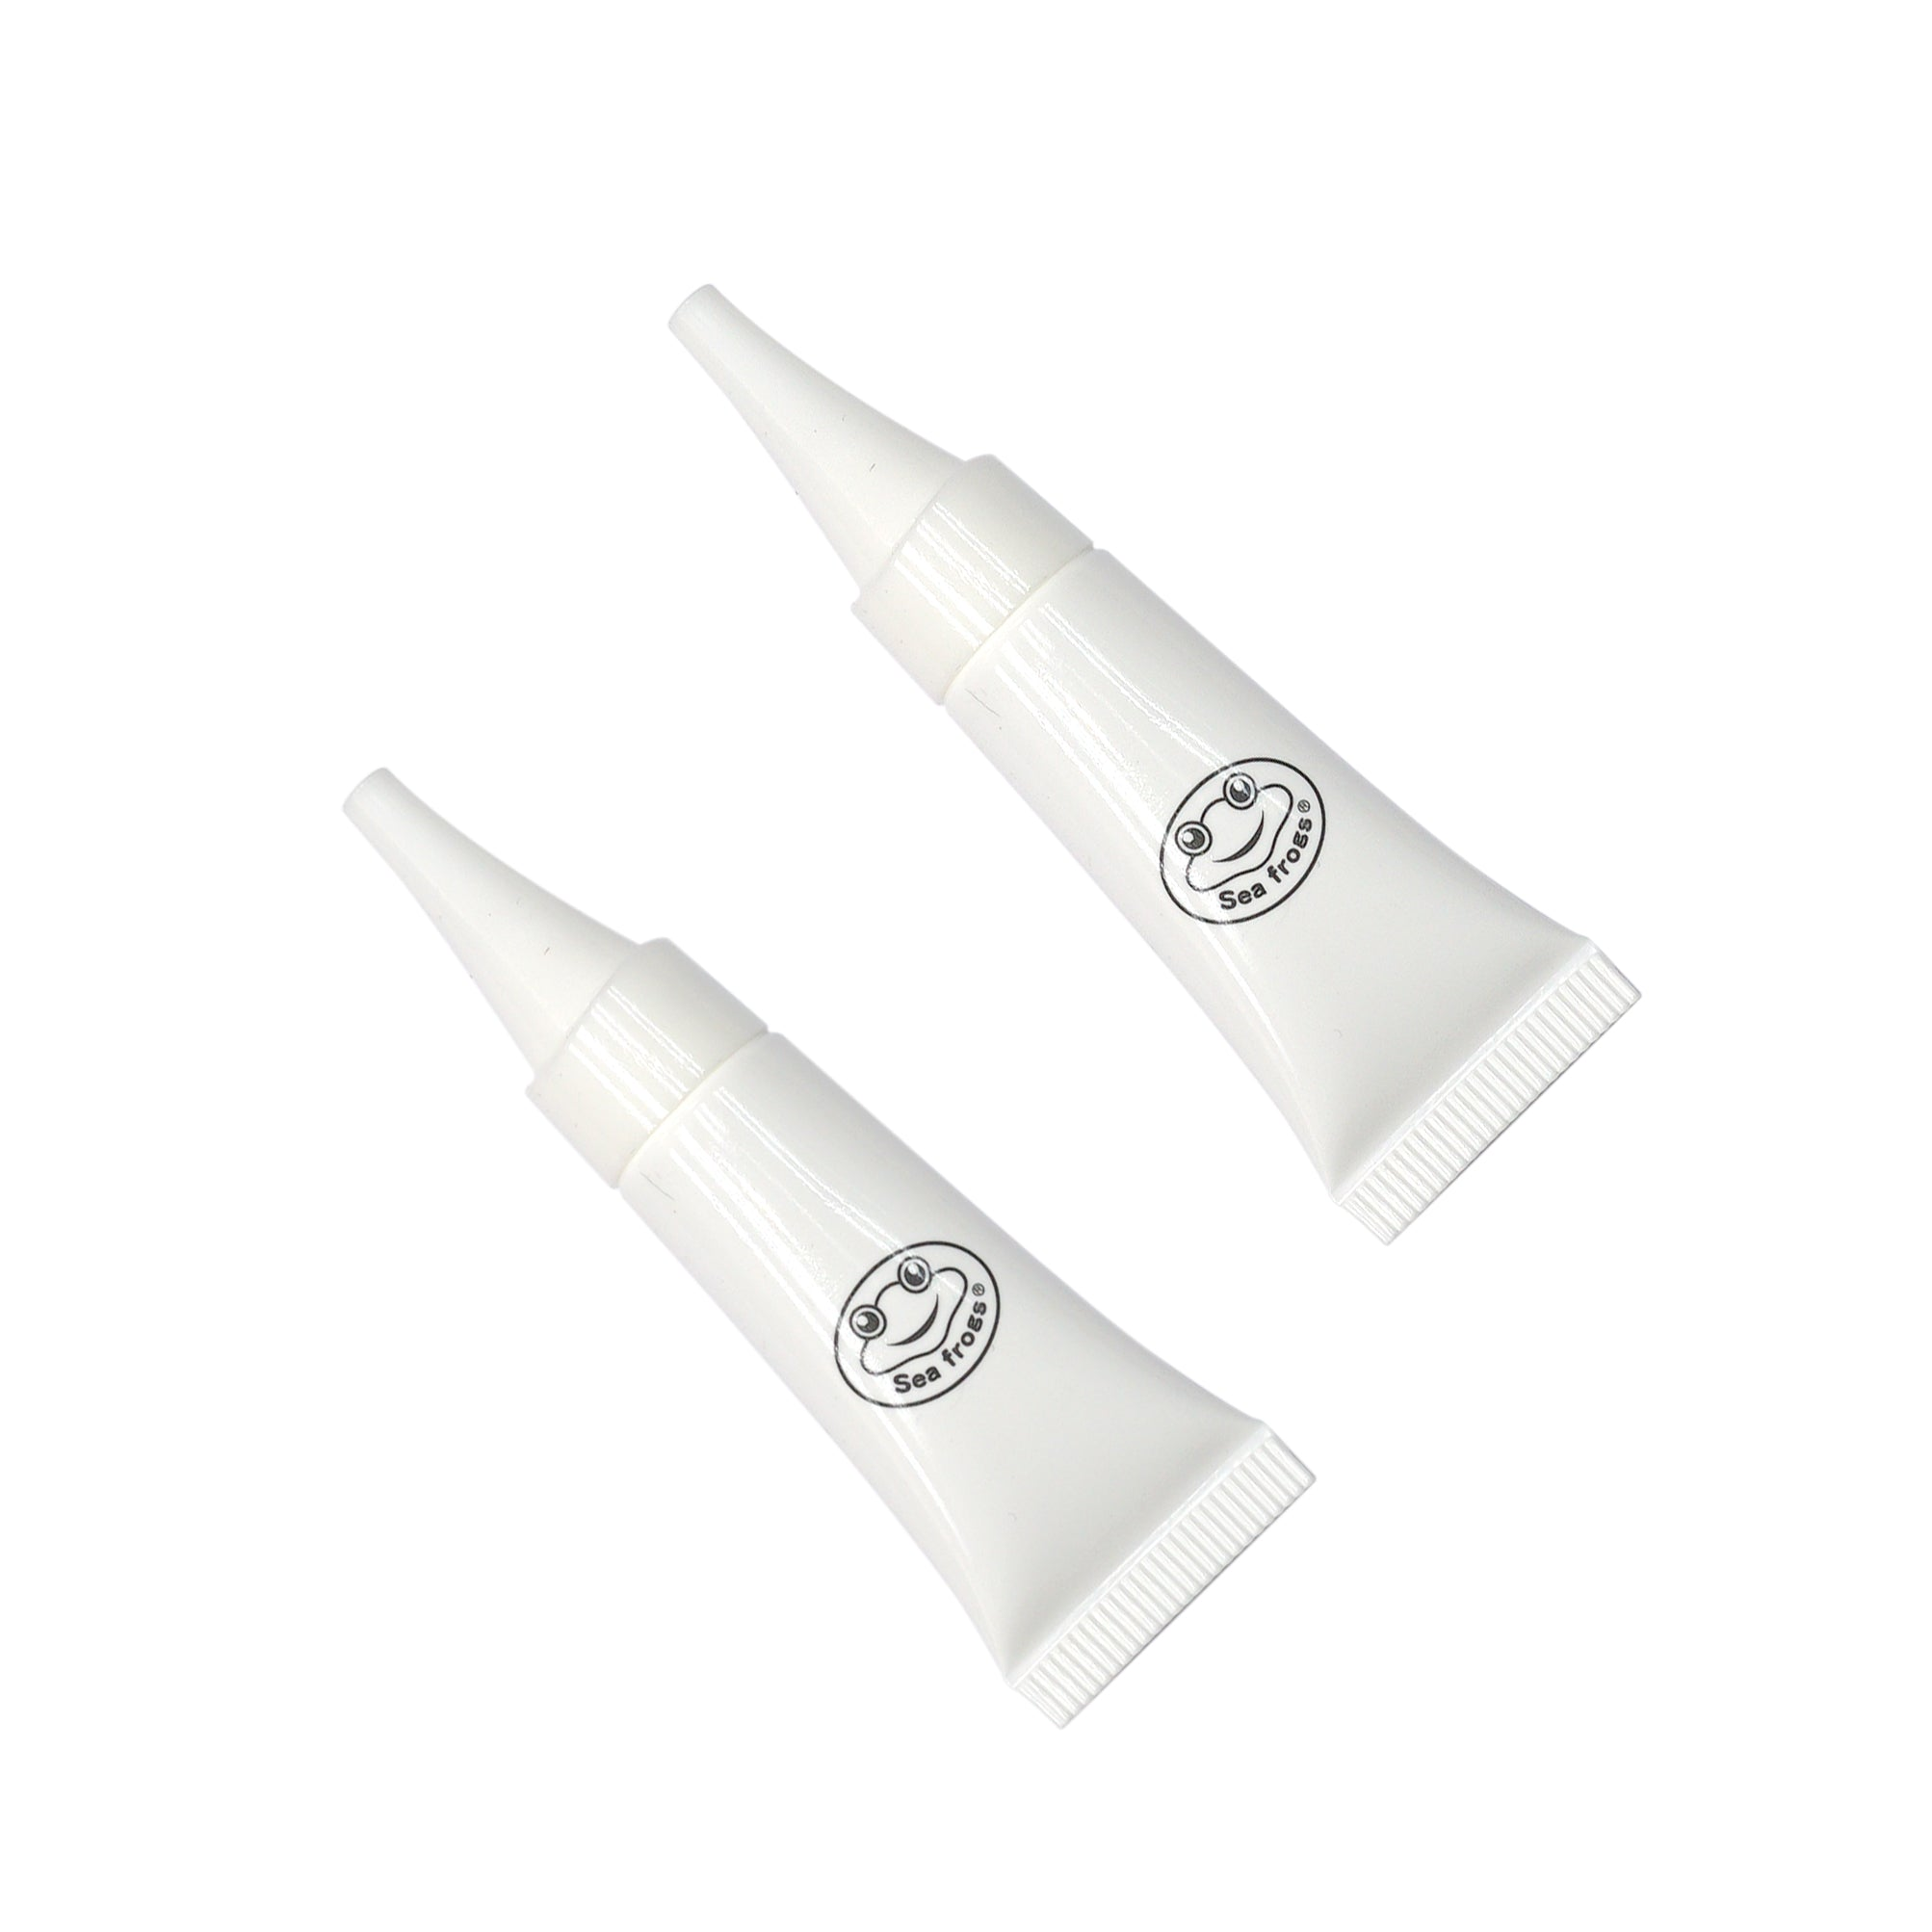 Silicone grease (2 pieces) - A6XXX SALTED LINE